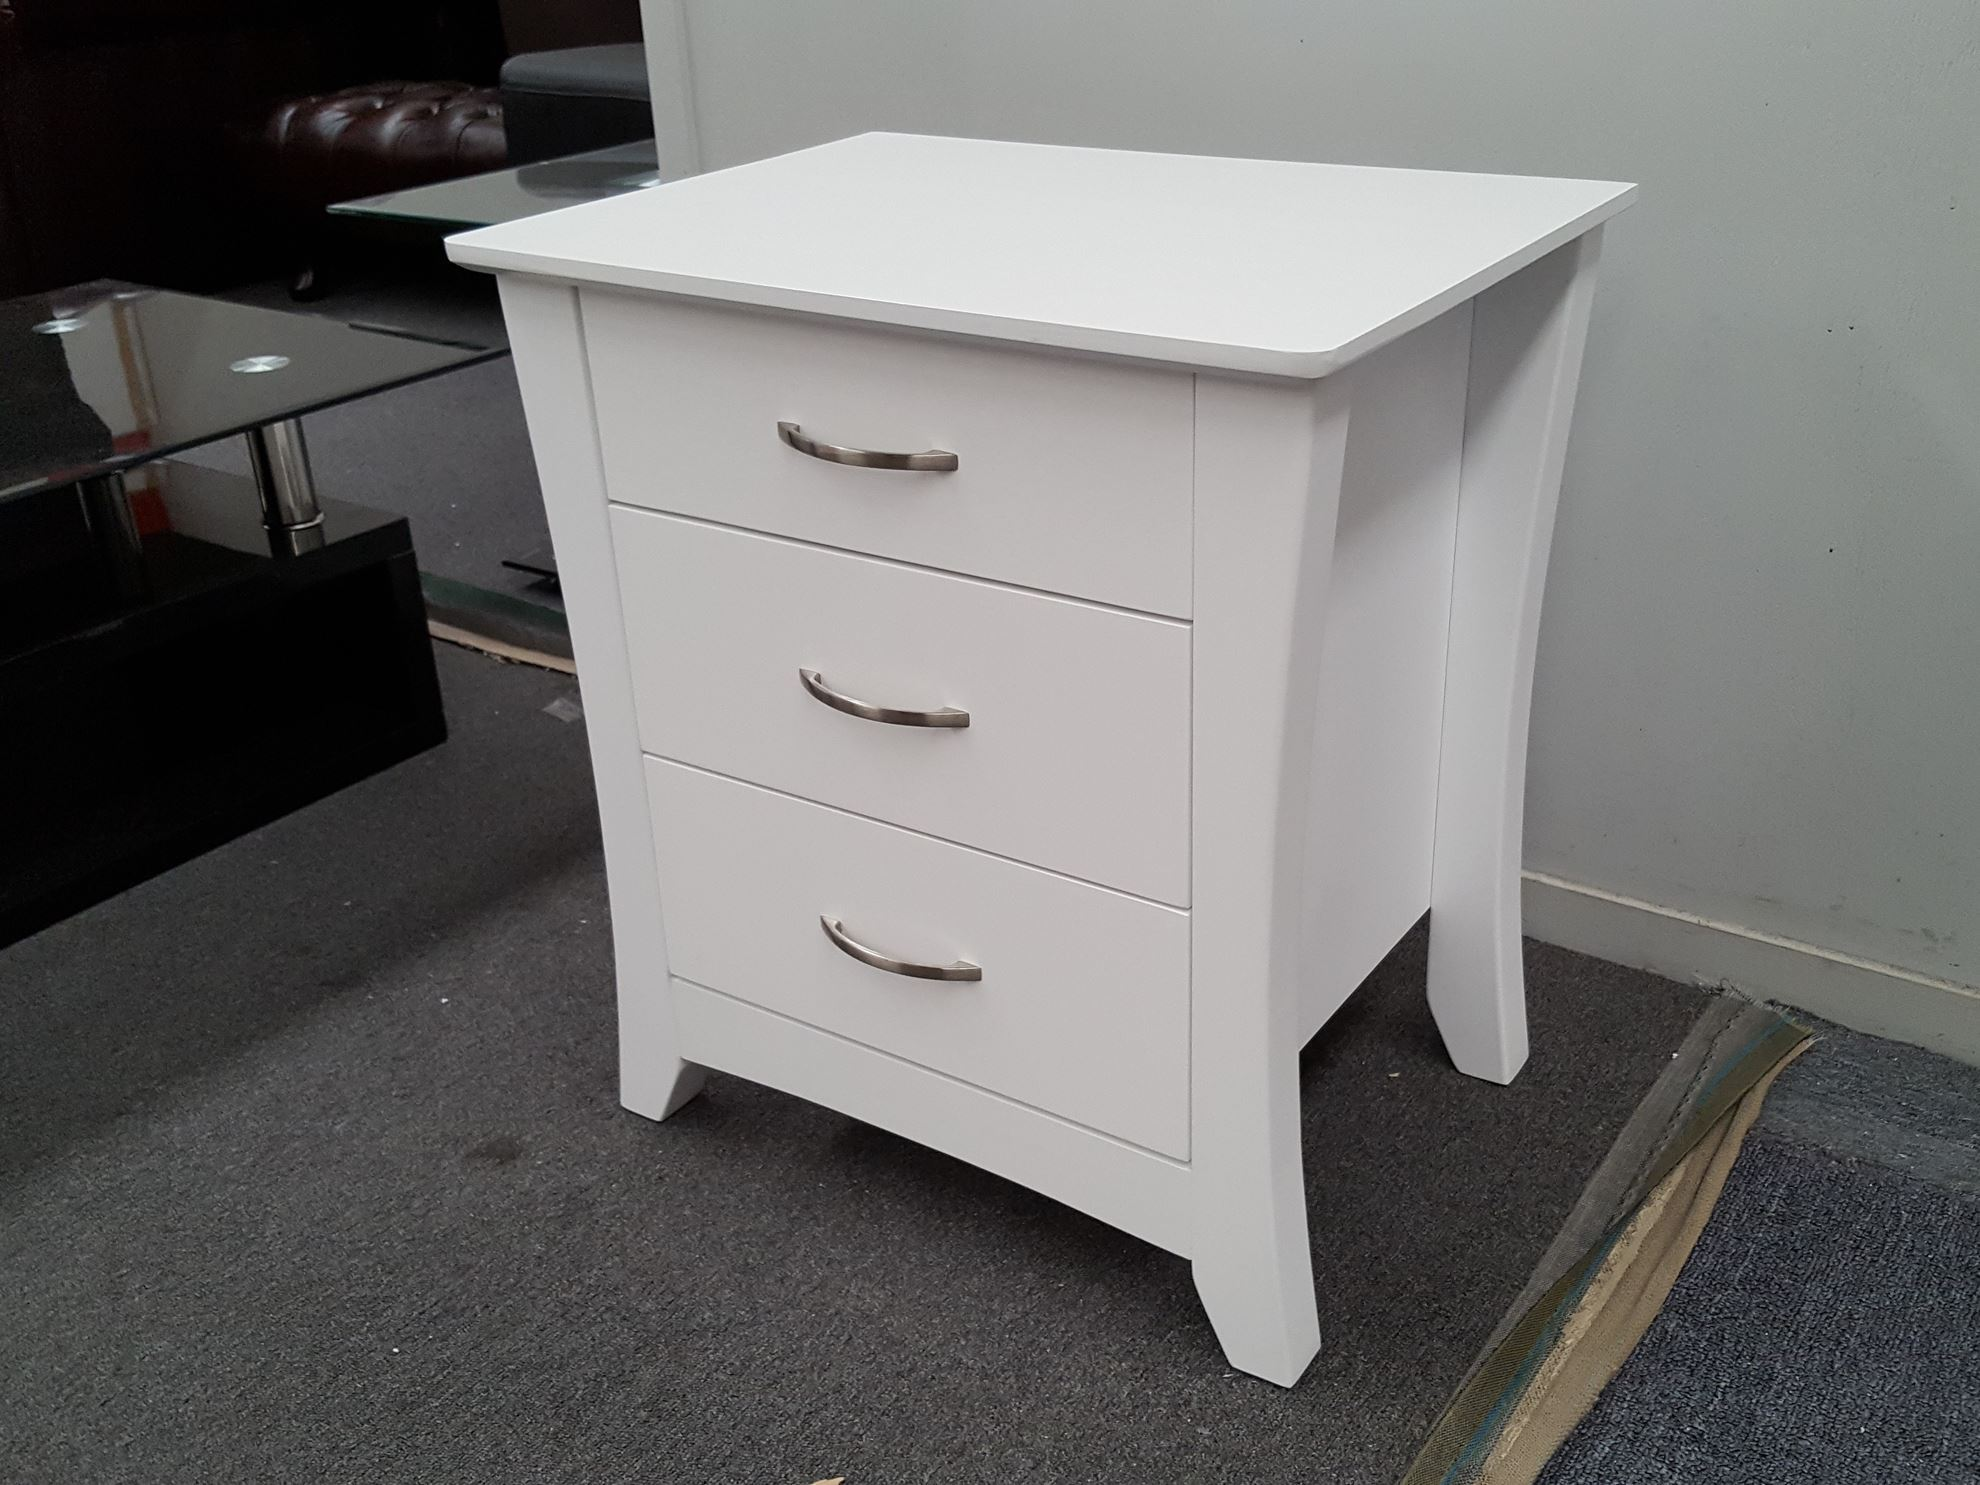 target white top side silver manning brigitte table antique dalton bedside small storage chest oak hafley retro mirrored end beem adeptus drawer console preusser black pine tables